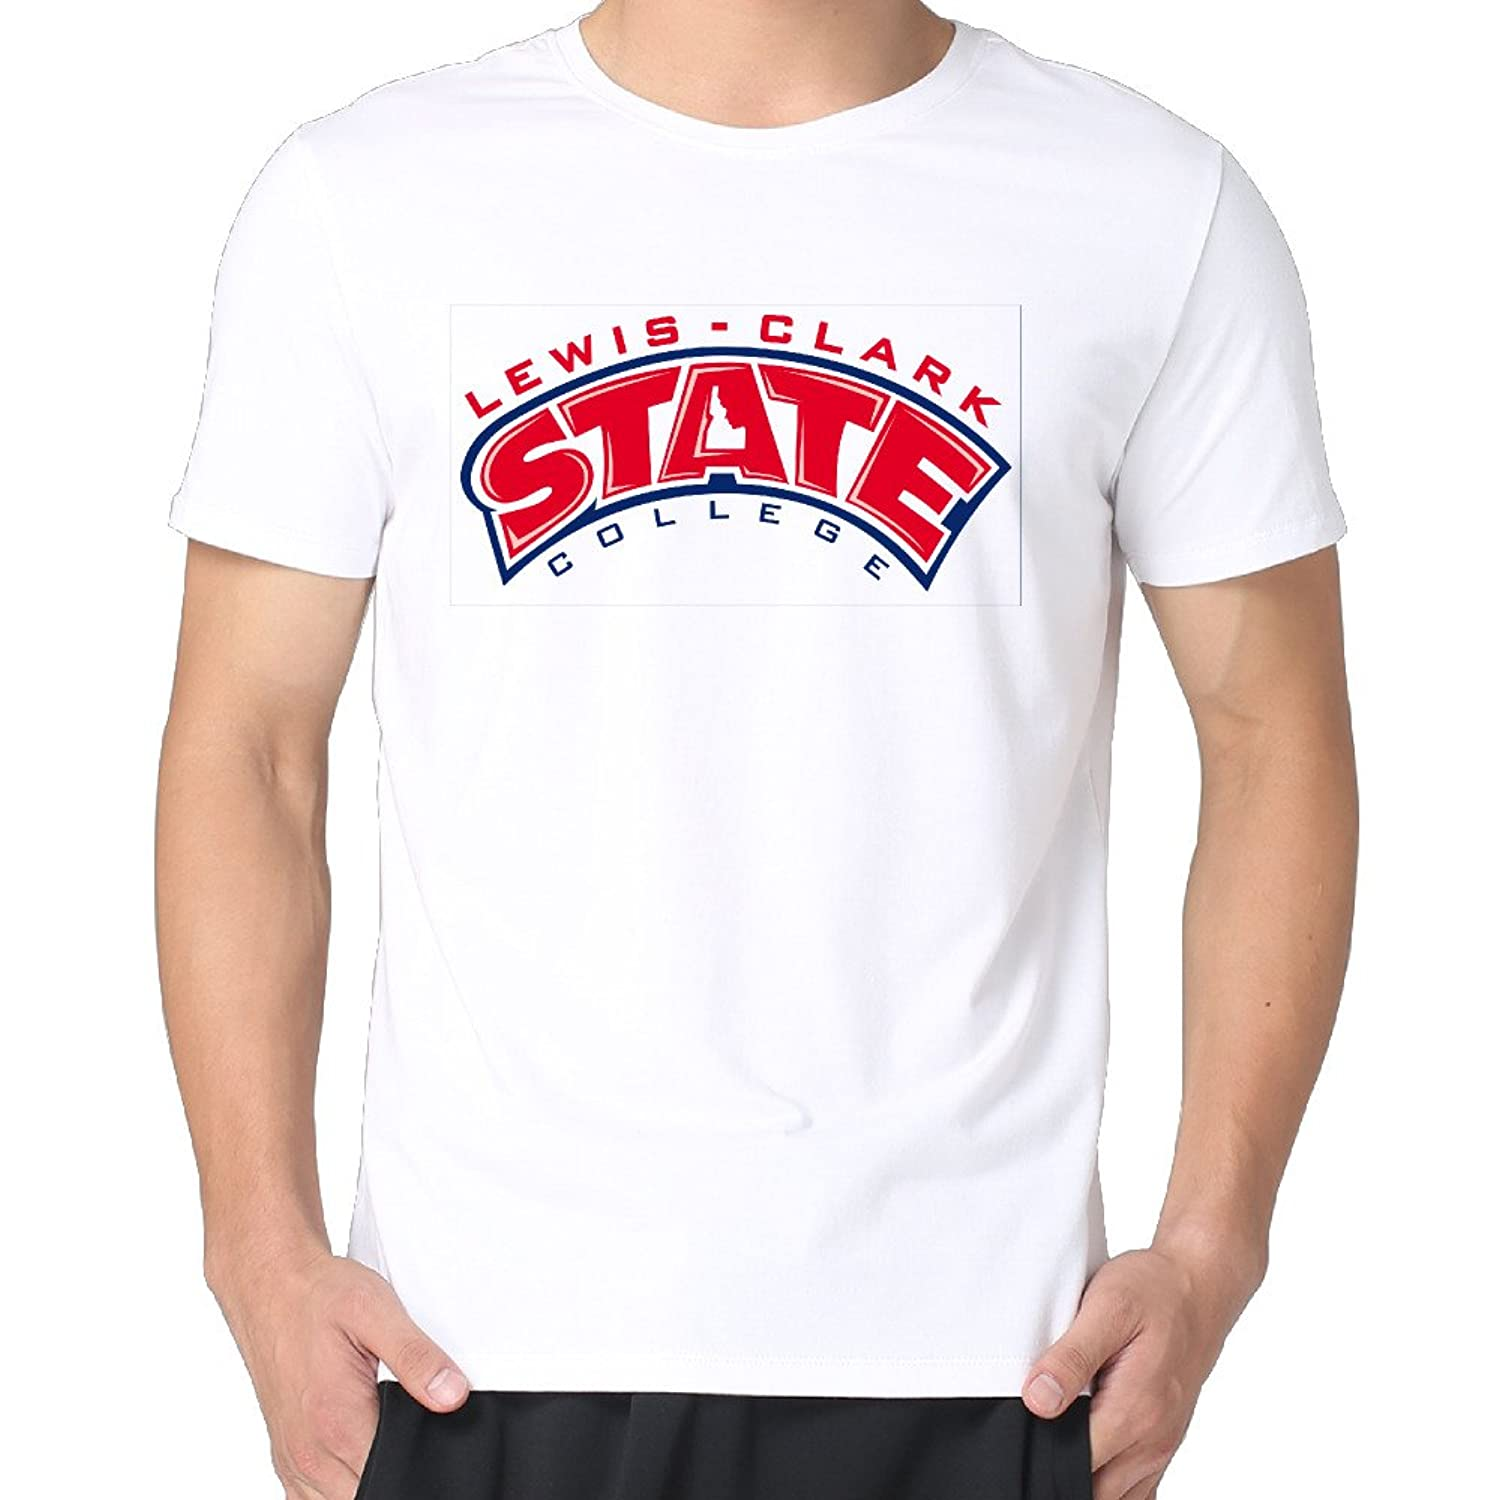 ClassicsLewis-Clark State College Make A Shirt Custom Tees2016 New Mens